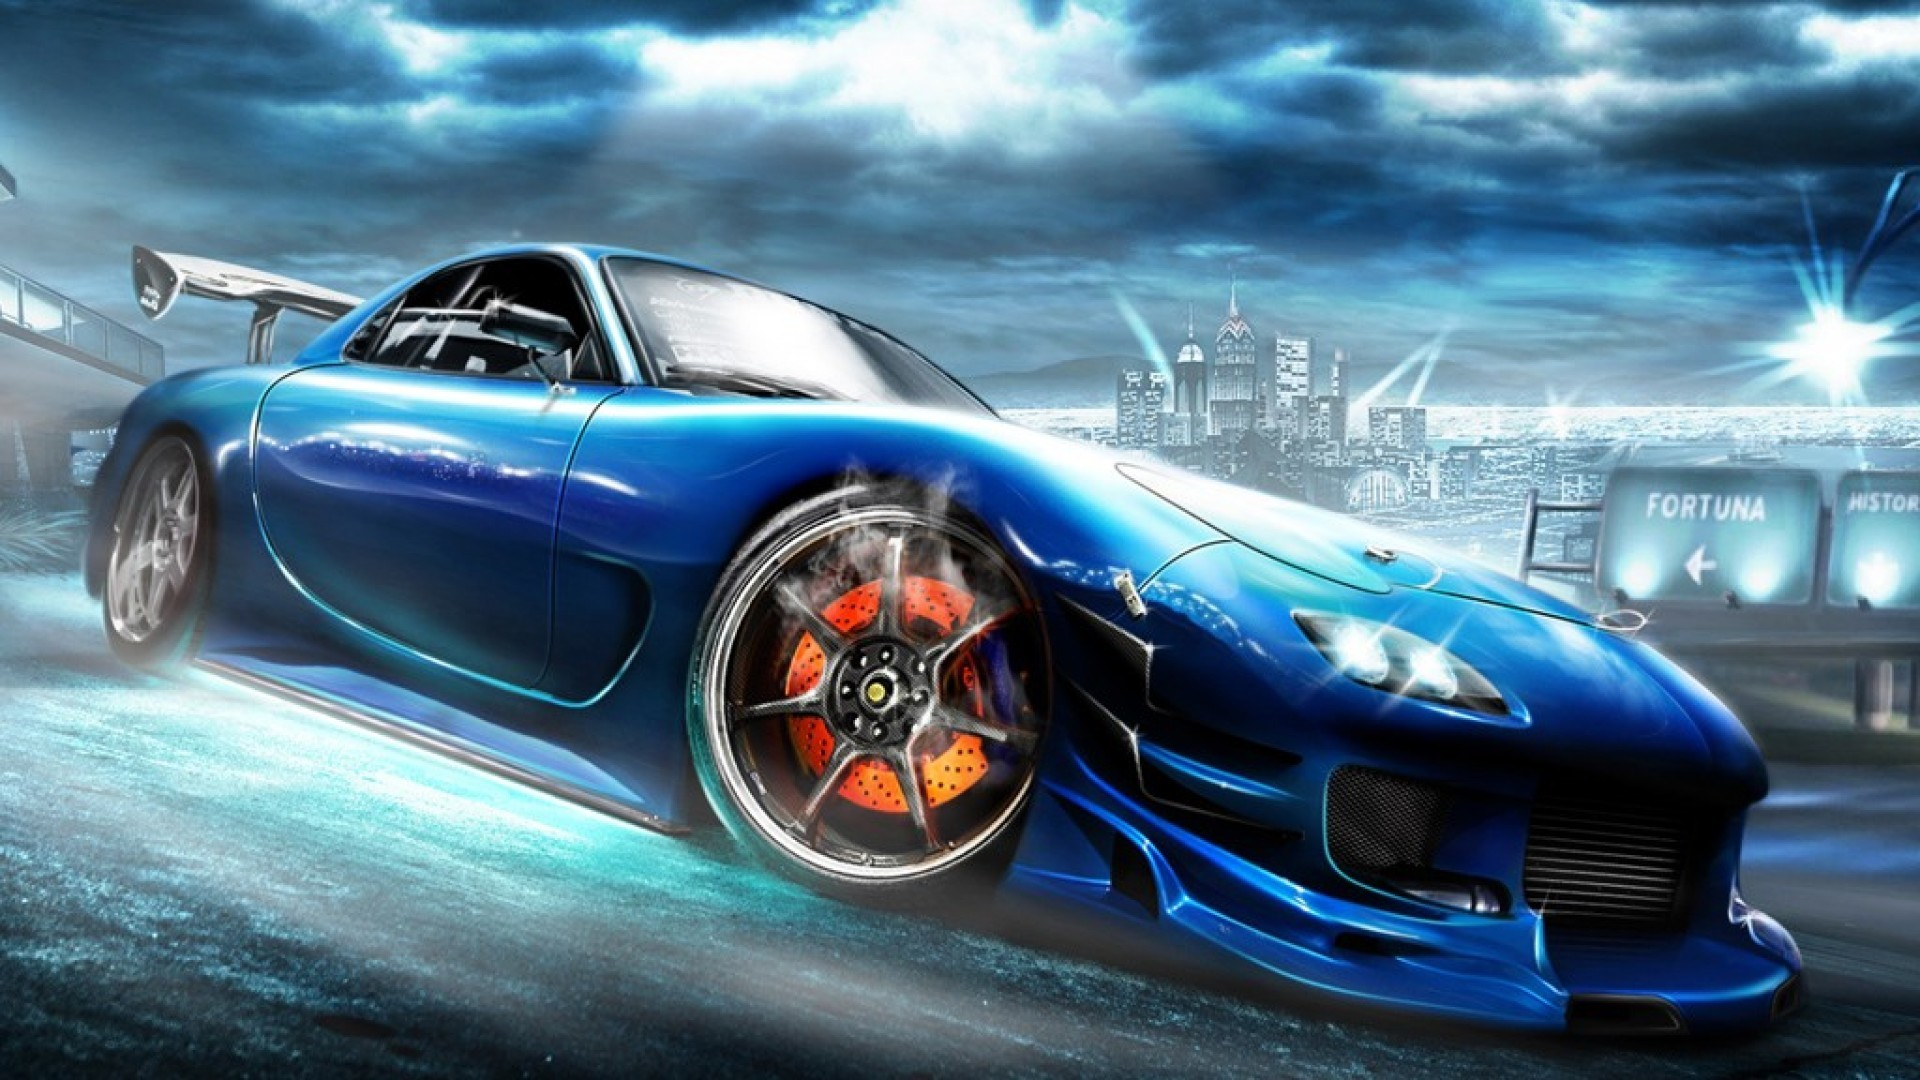 Awesome Mazda rx7 Wallpaper. 1920×1080